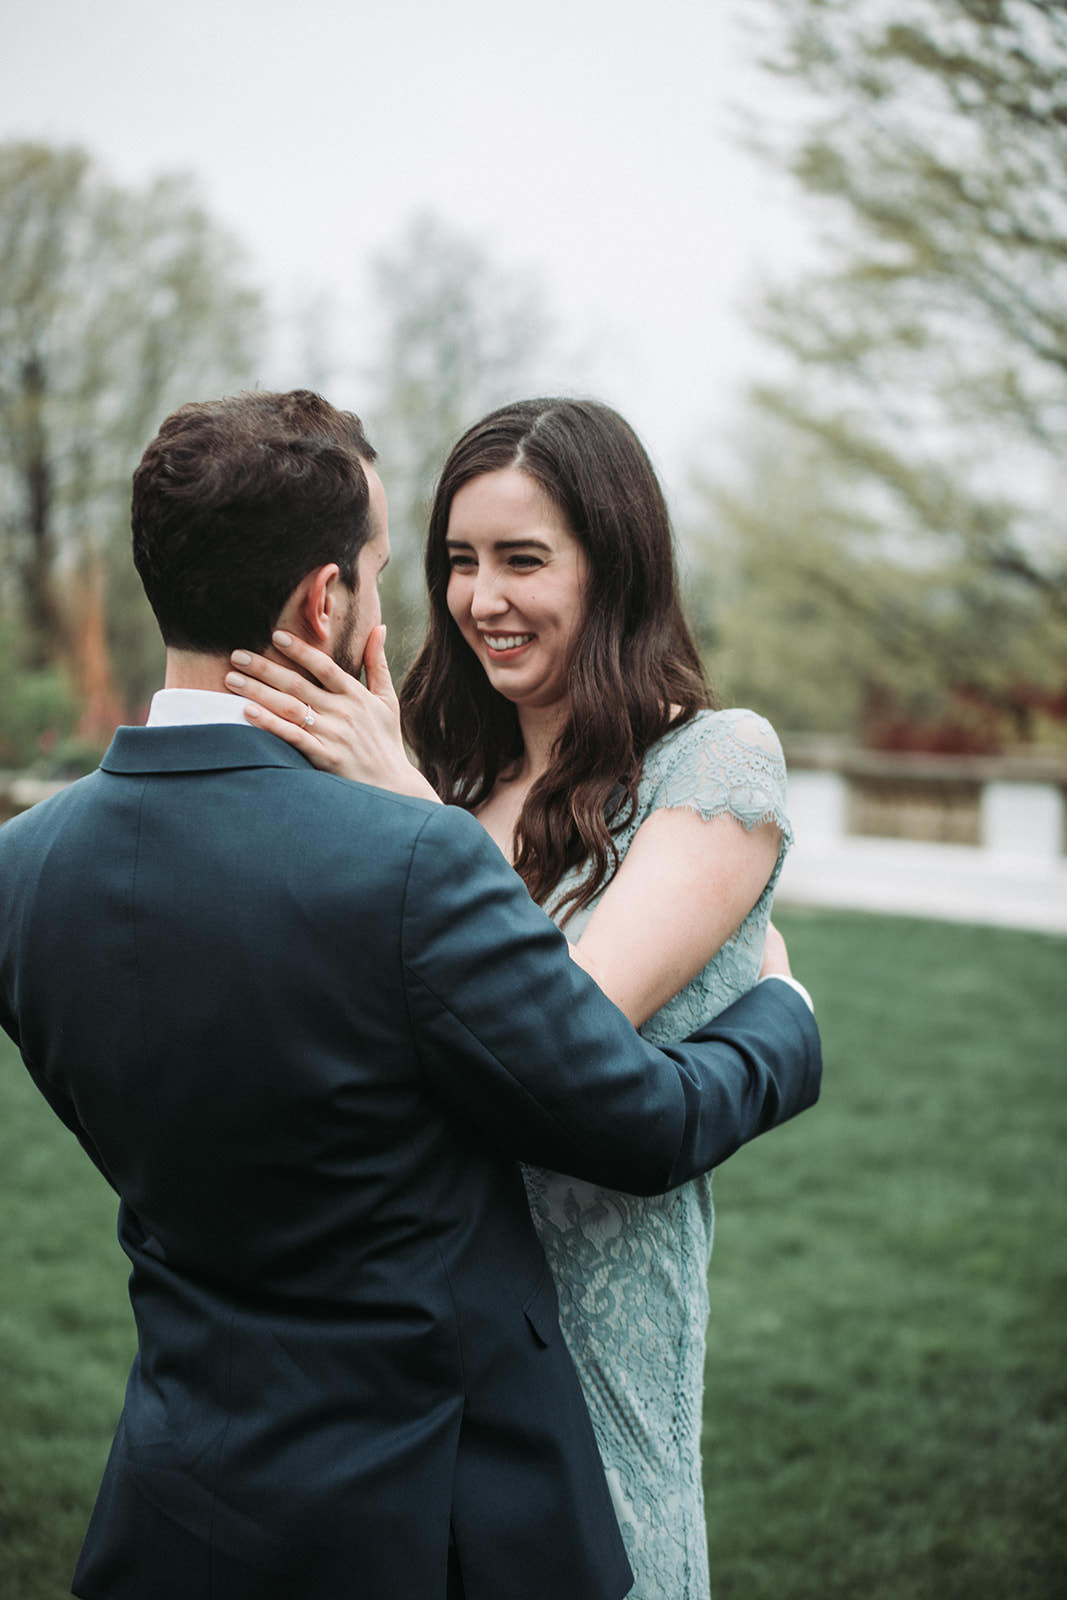 Newfields_Indianapolis_Spring_Proposal_Engagement_Session-74.jpg